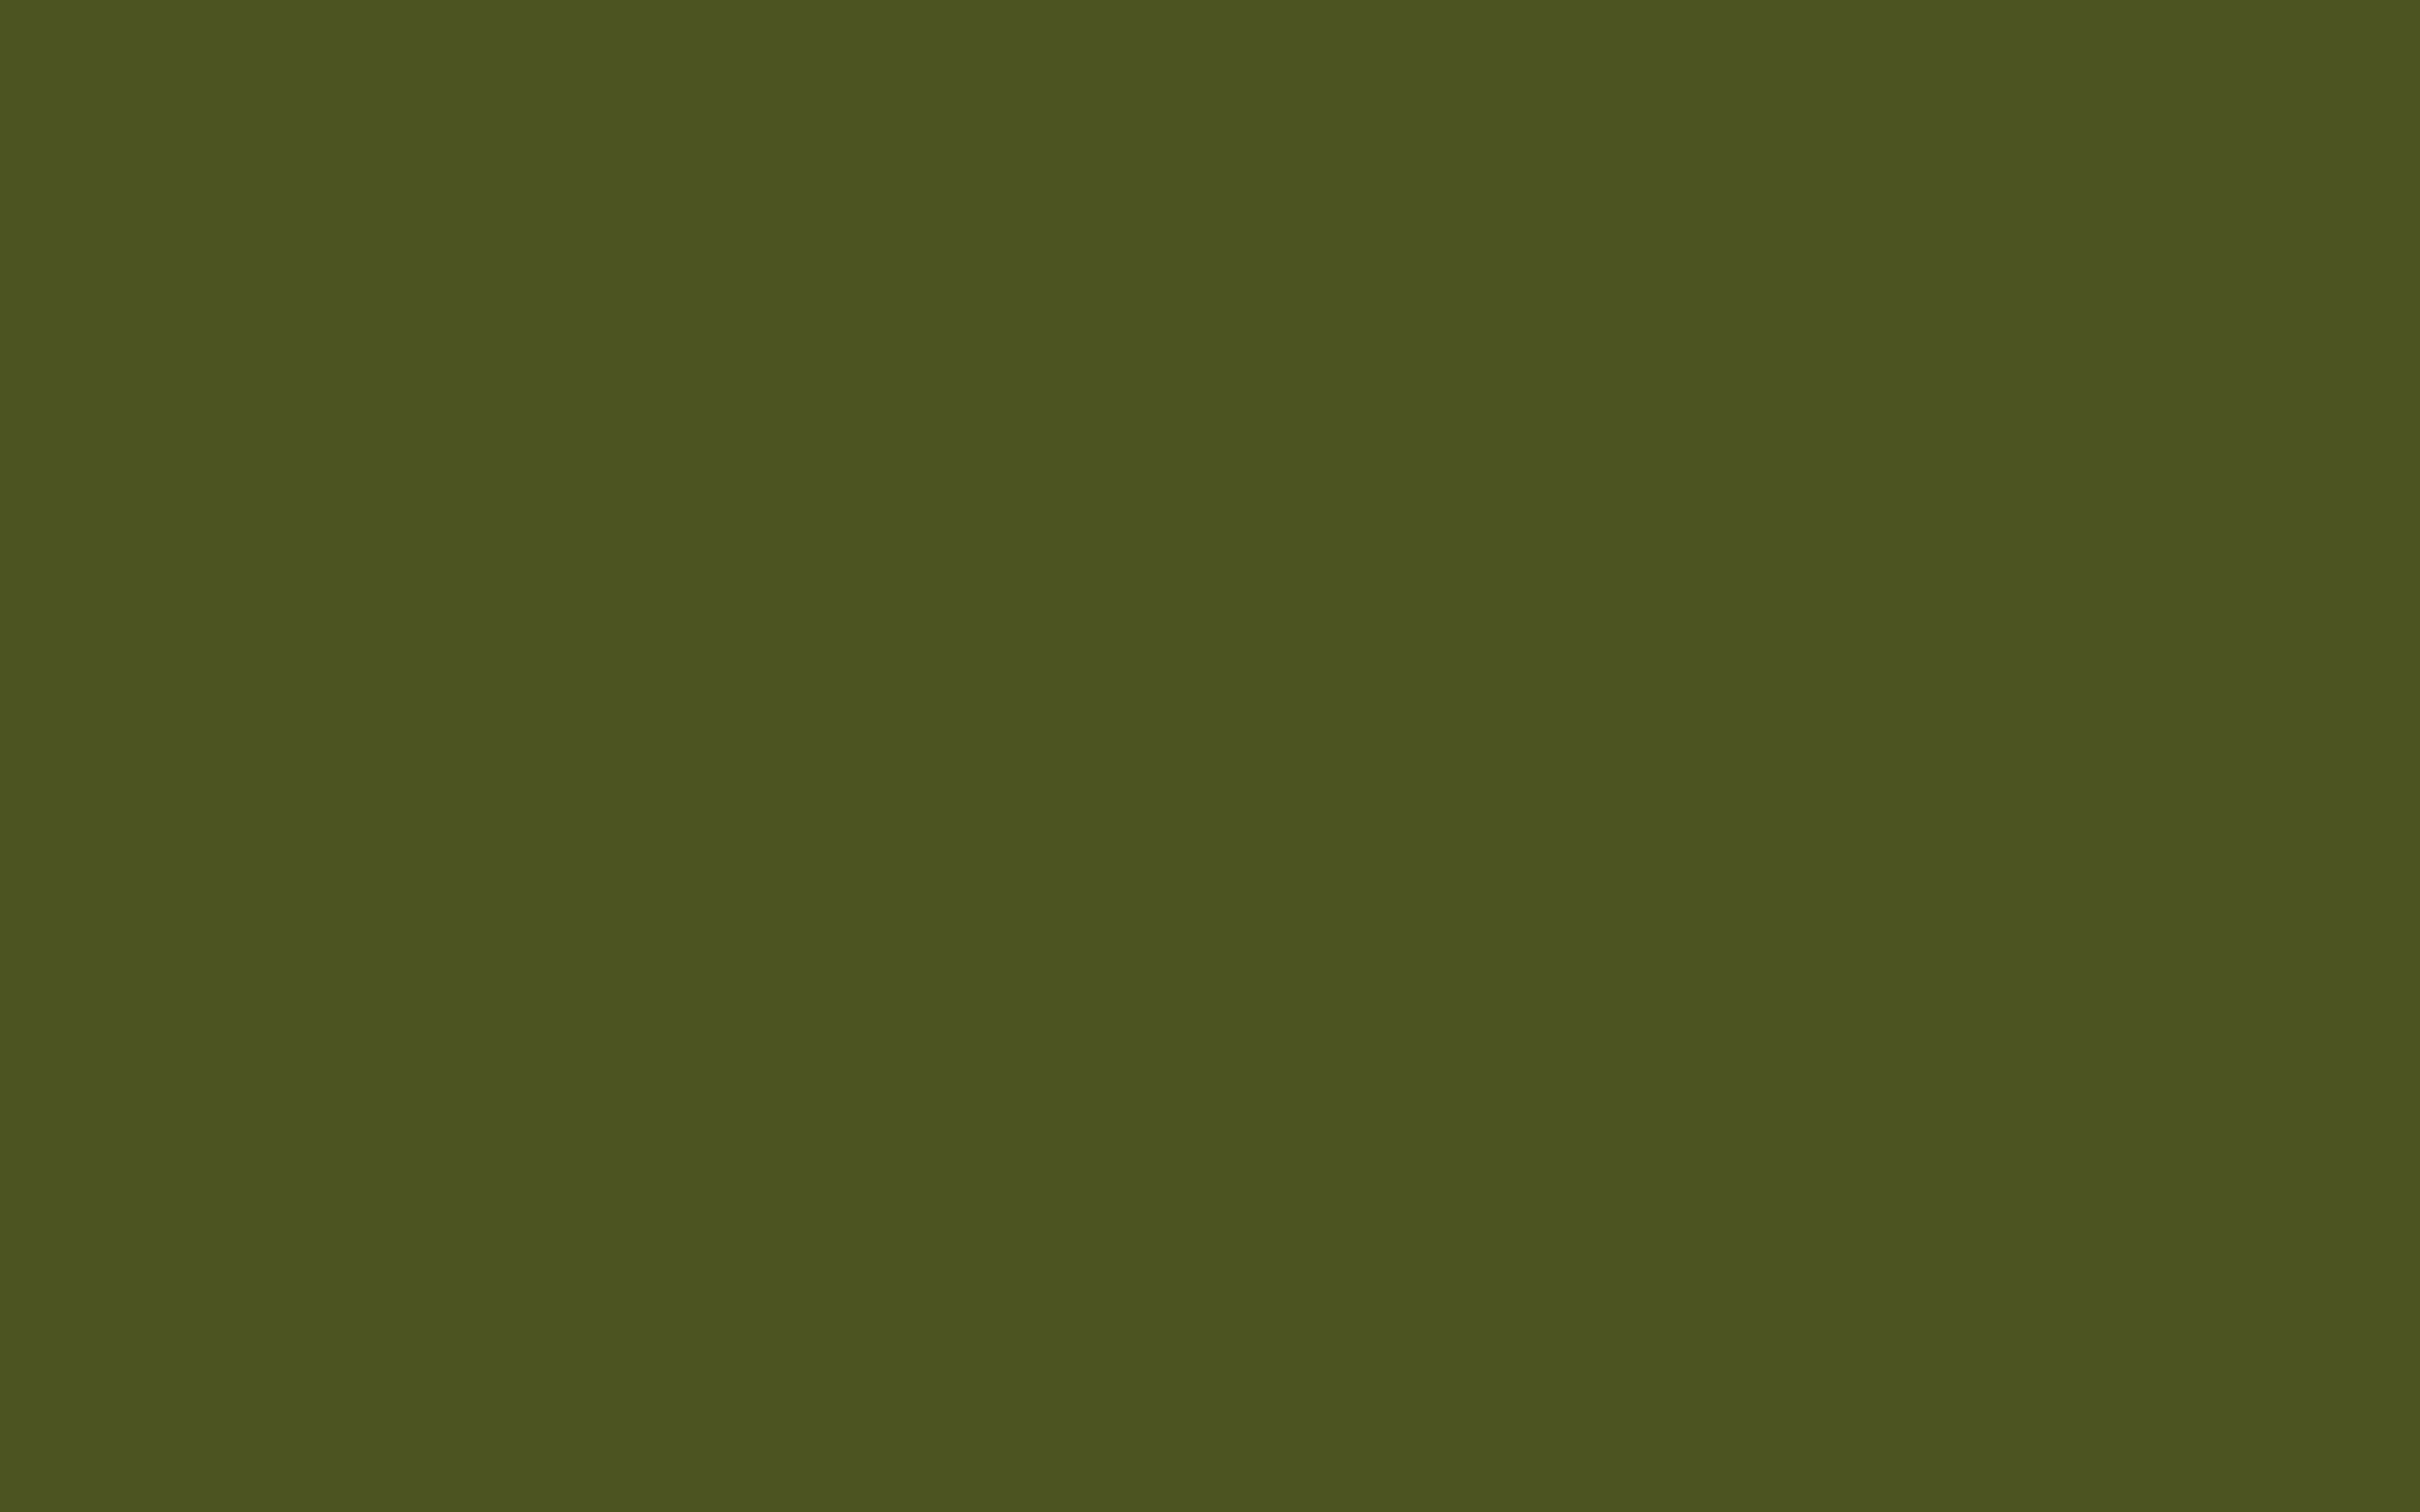 2560x1600 Army Green Solid Color Background 2560x1600